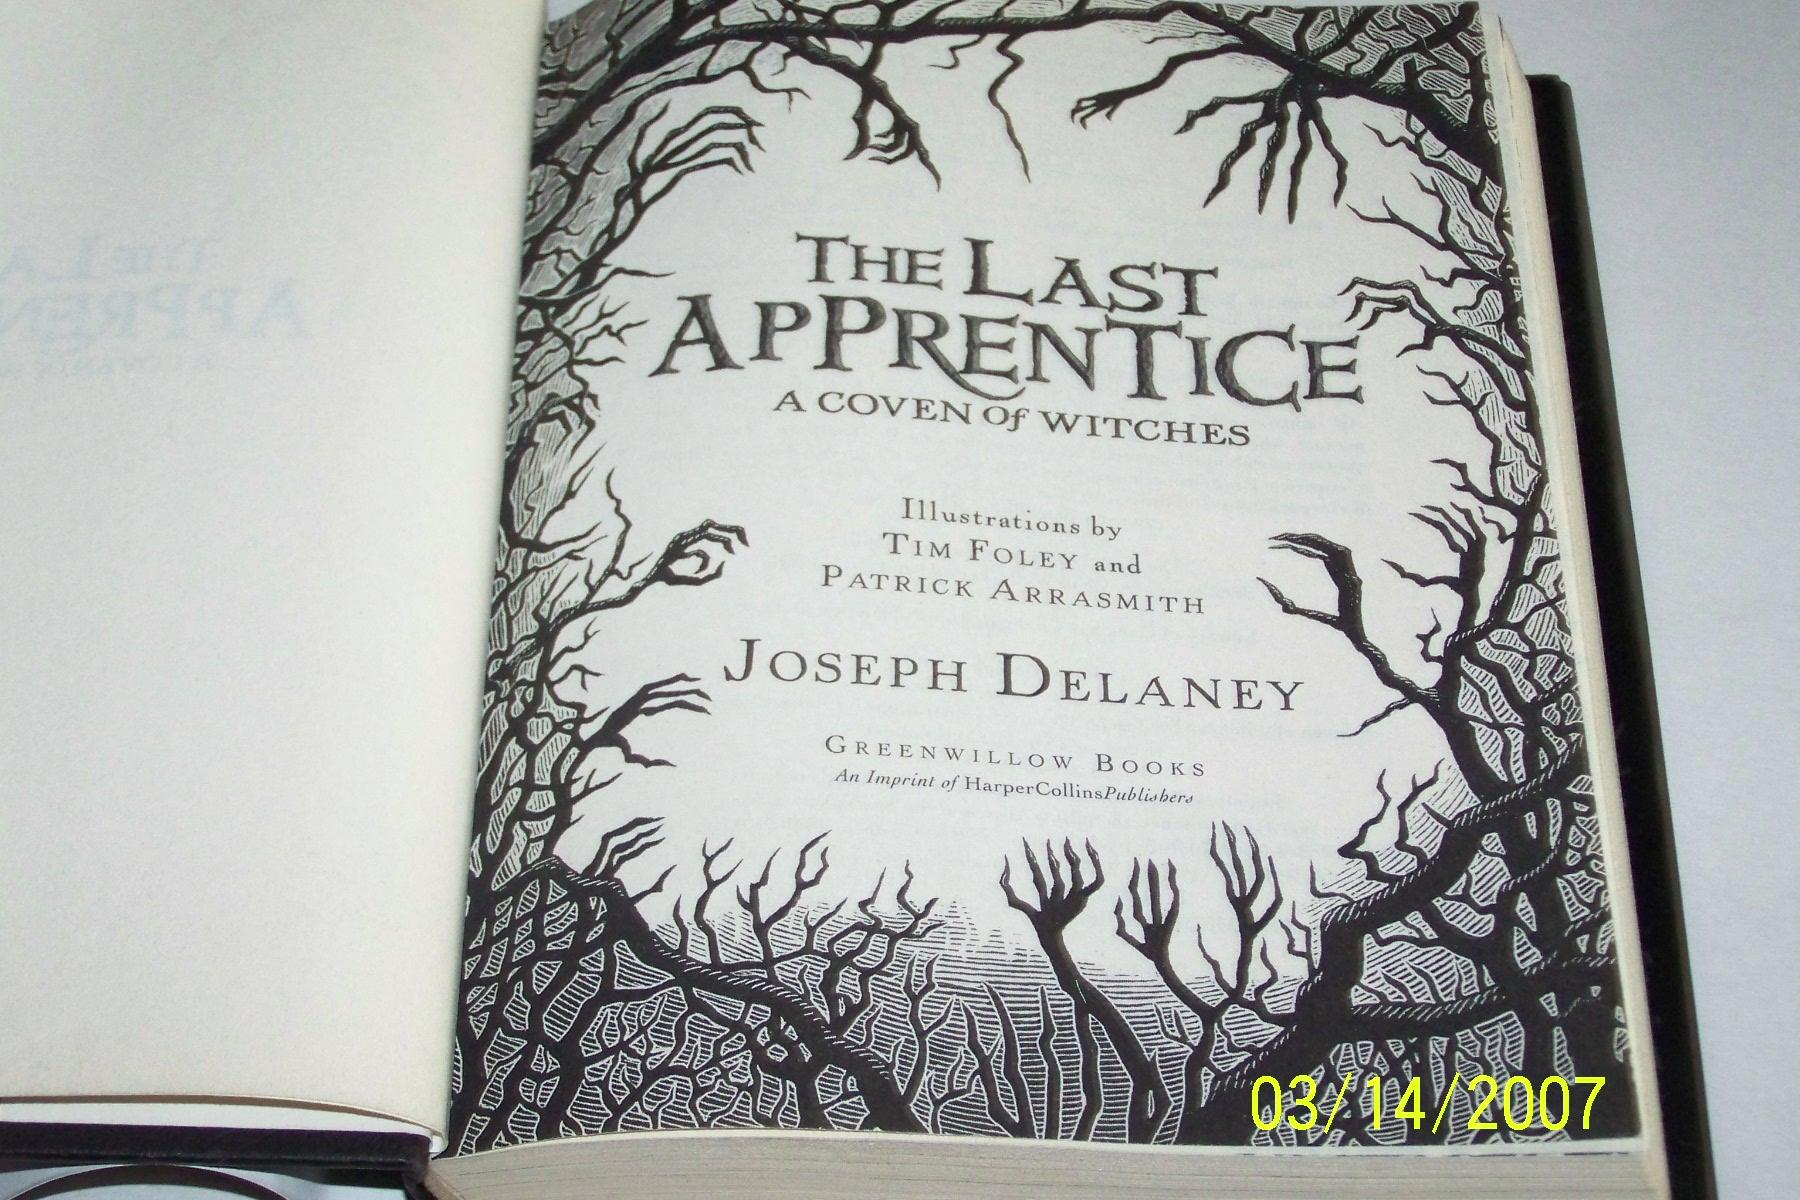 The Last Apprentice, A Coven of Witches